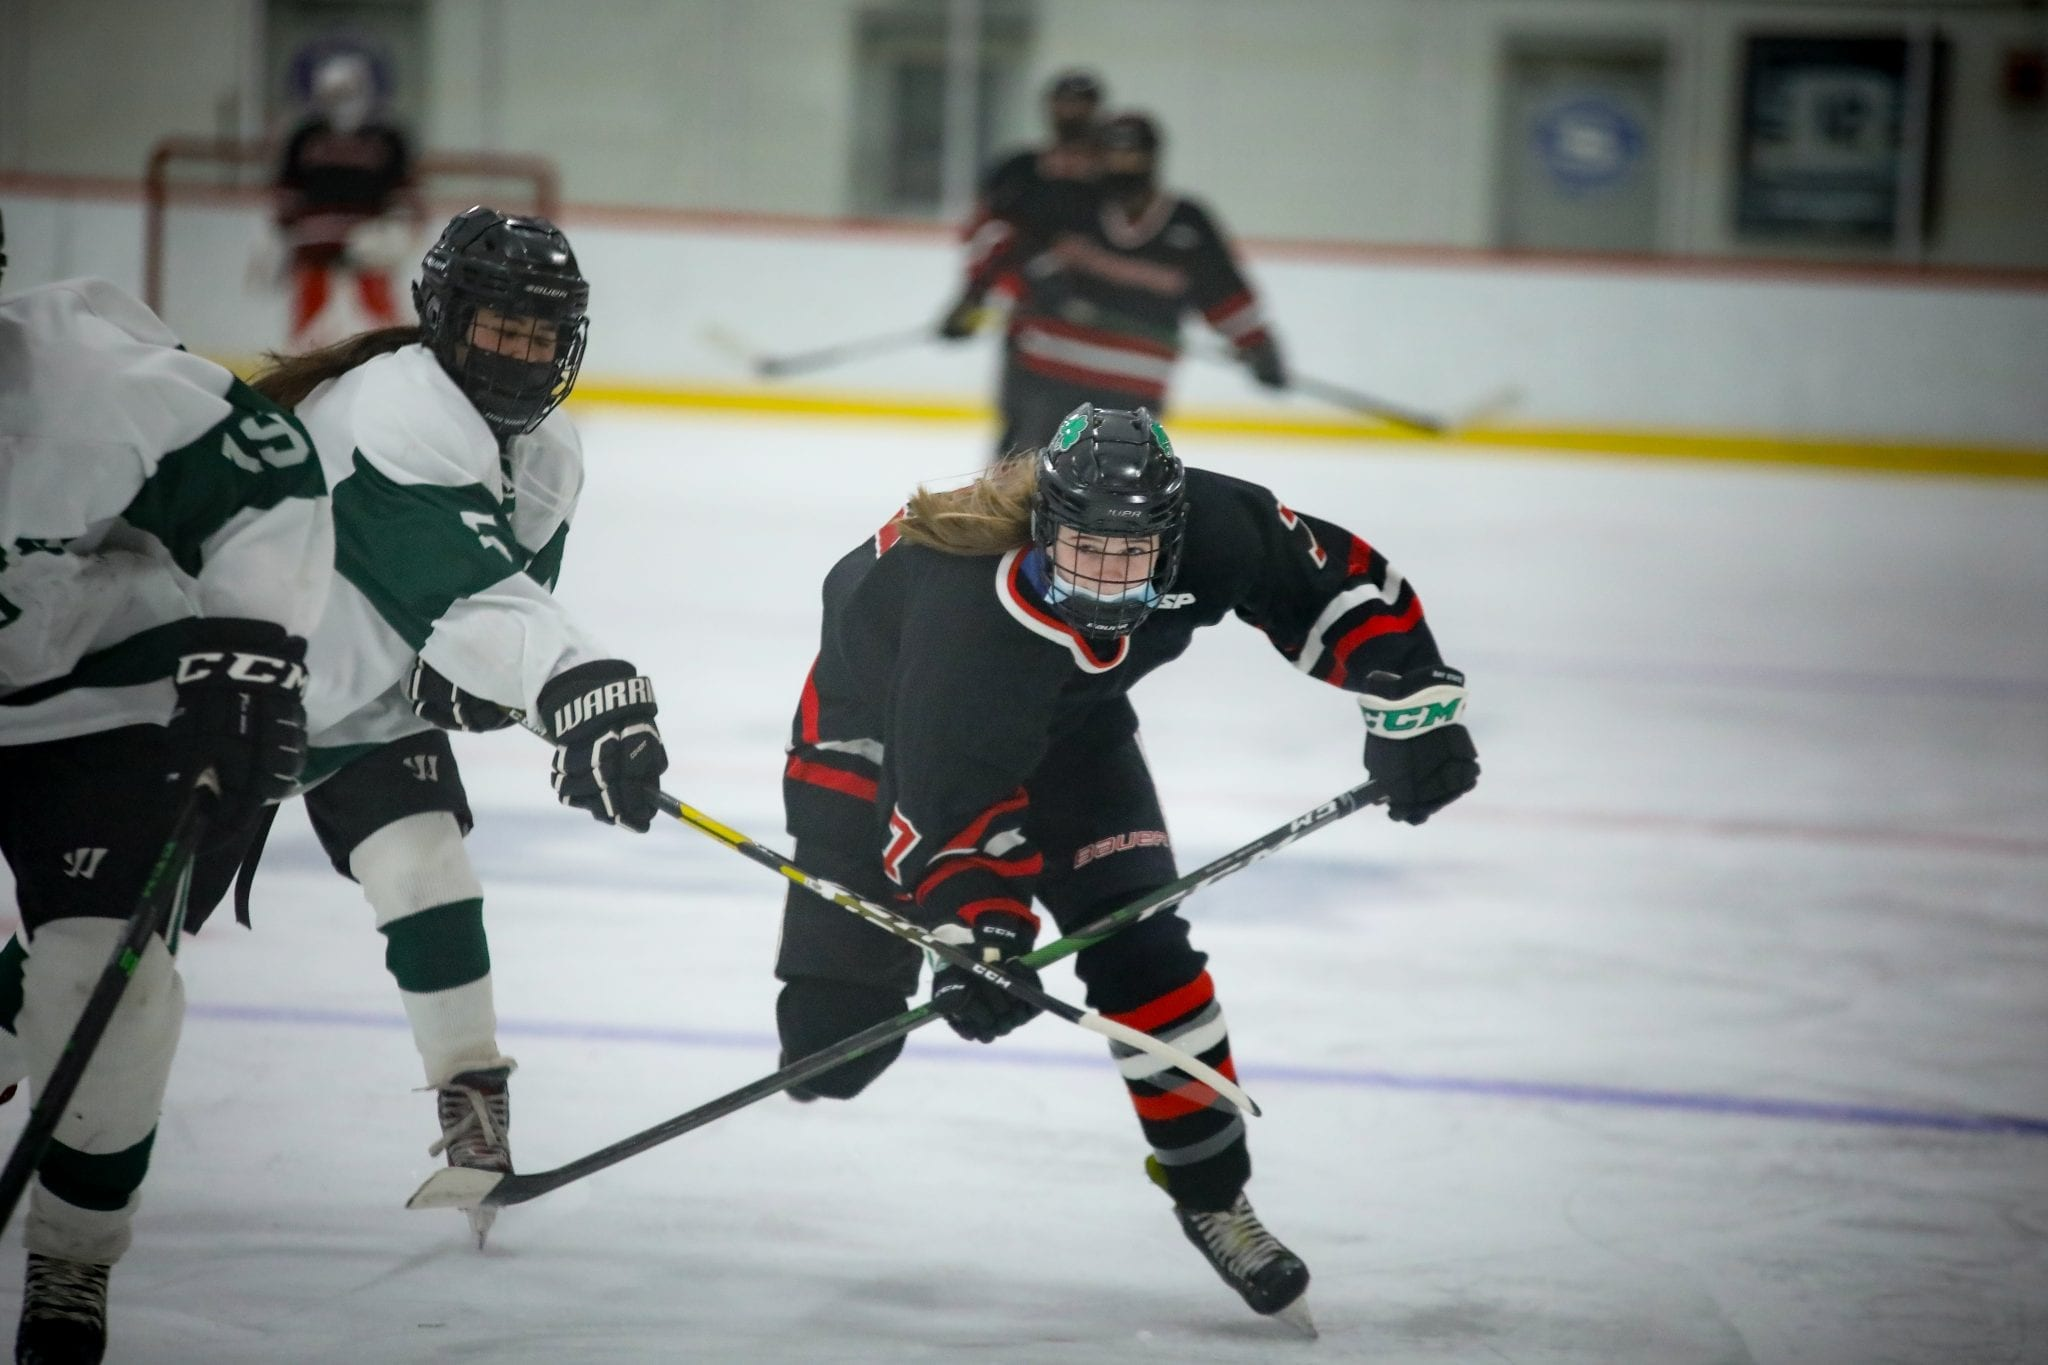 8th grader Caroline Doherty is part of the bright future of HHS girls hockey.